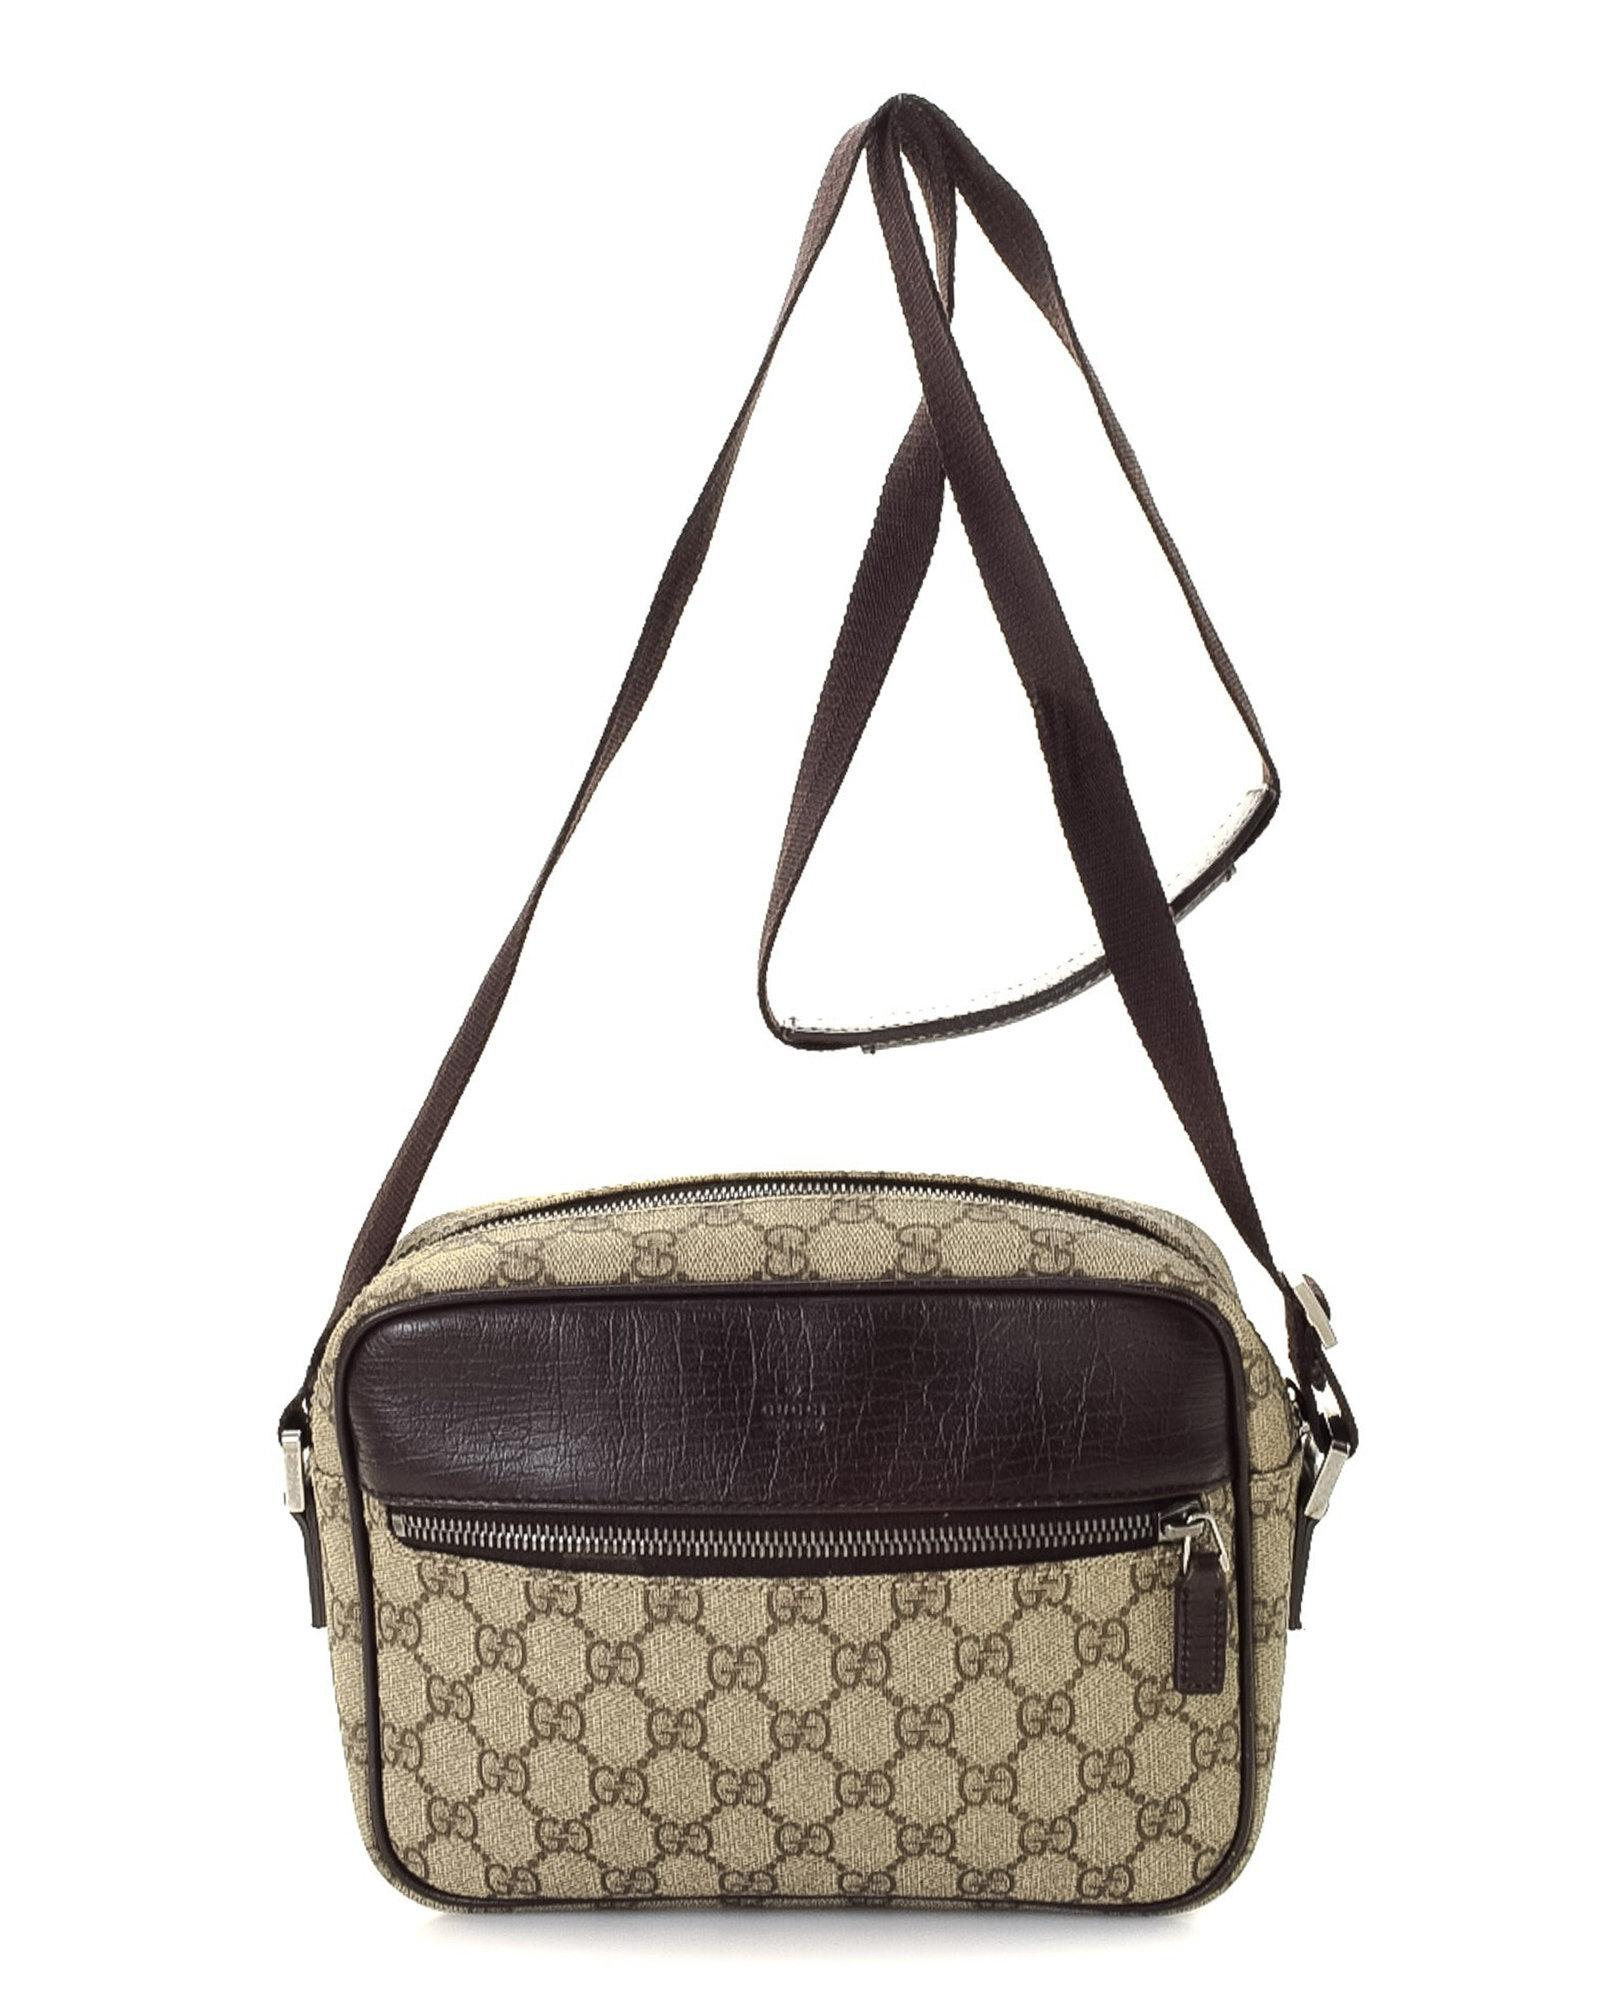 47a7fb919927d Lyst - Gucci Gg Supreme Crossbody Bag - Vintage in Natural